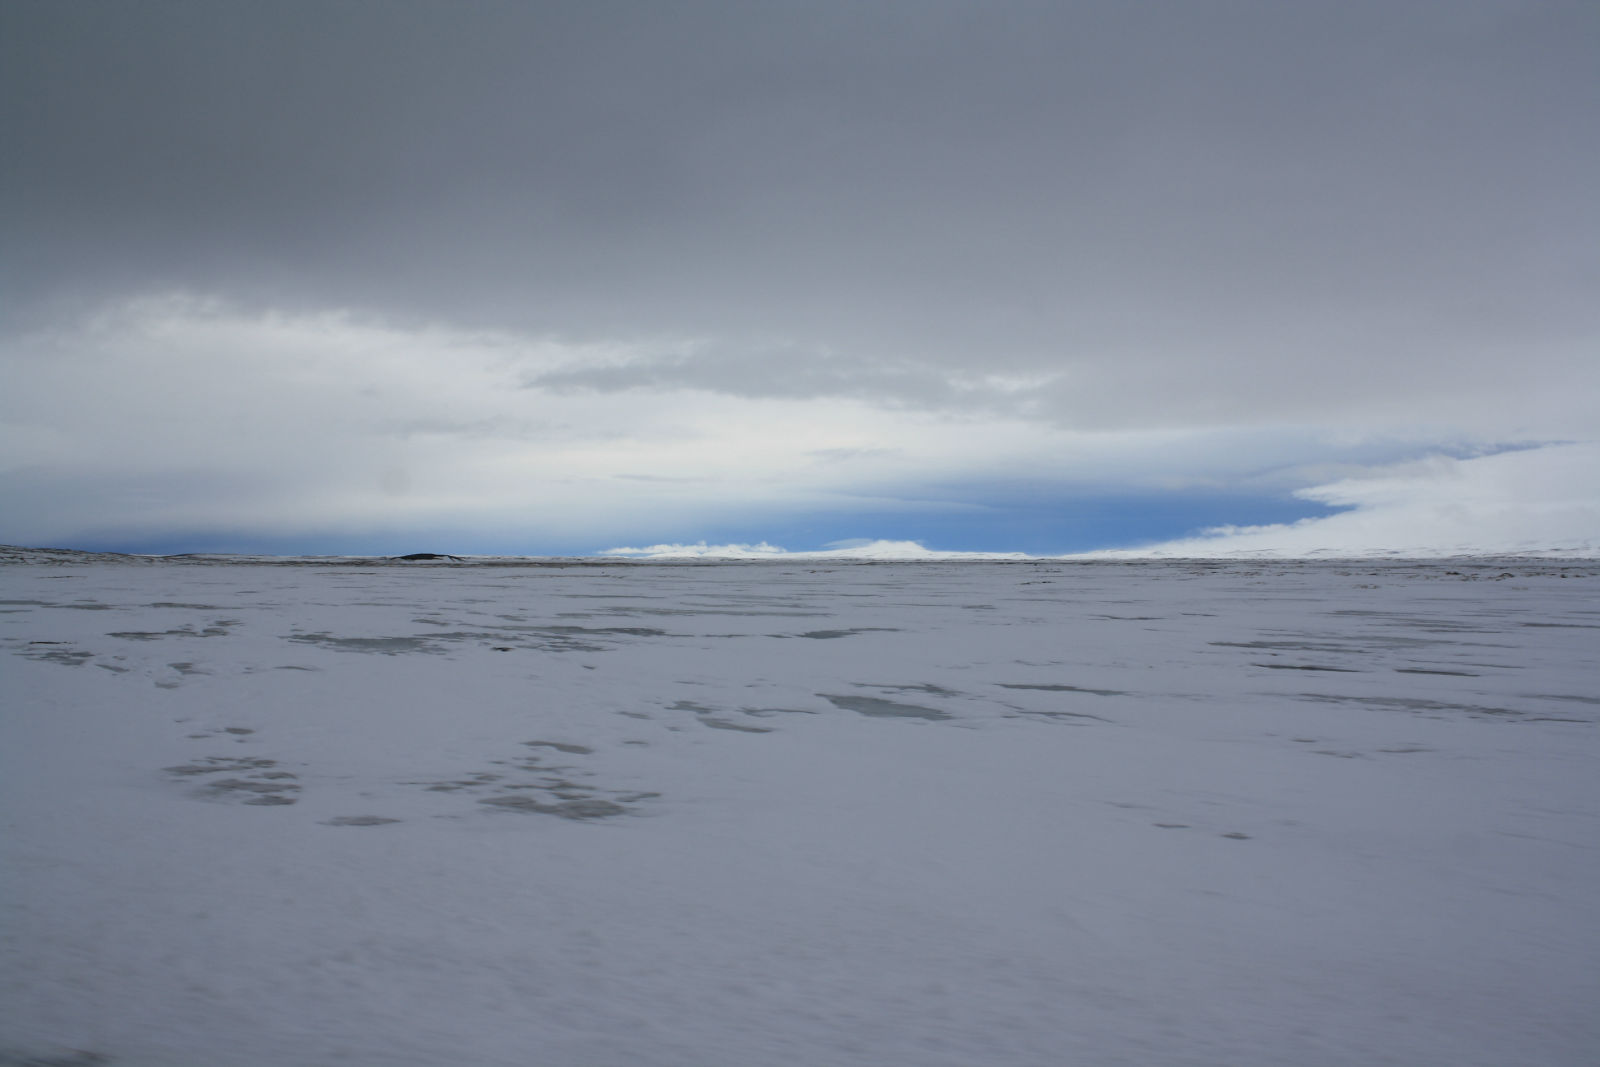 Snow and Ice: From Hofn to Myvatn